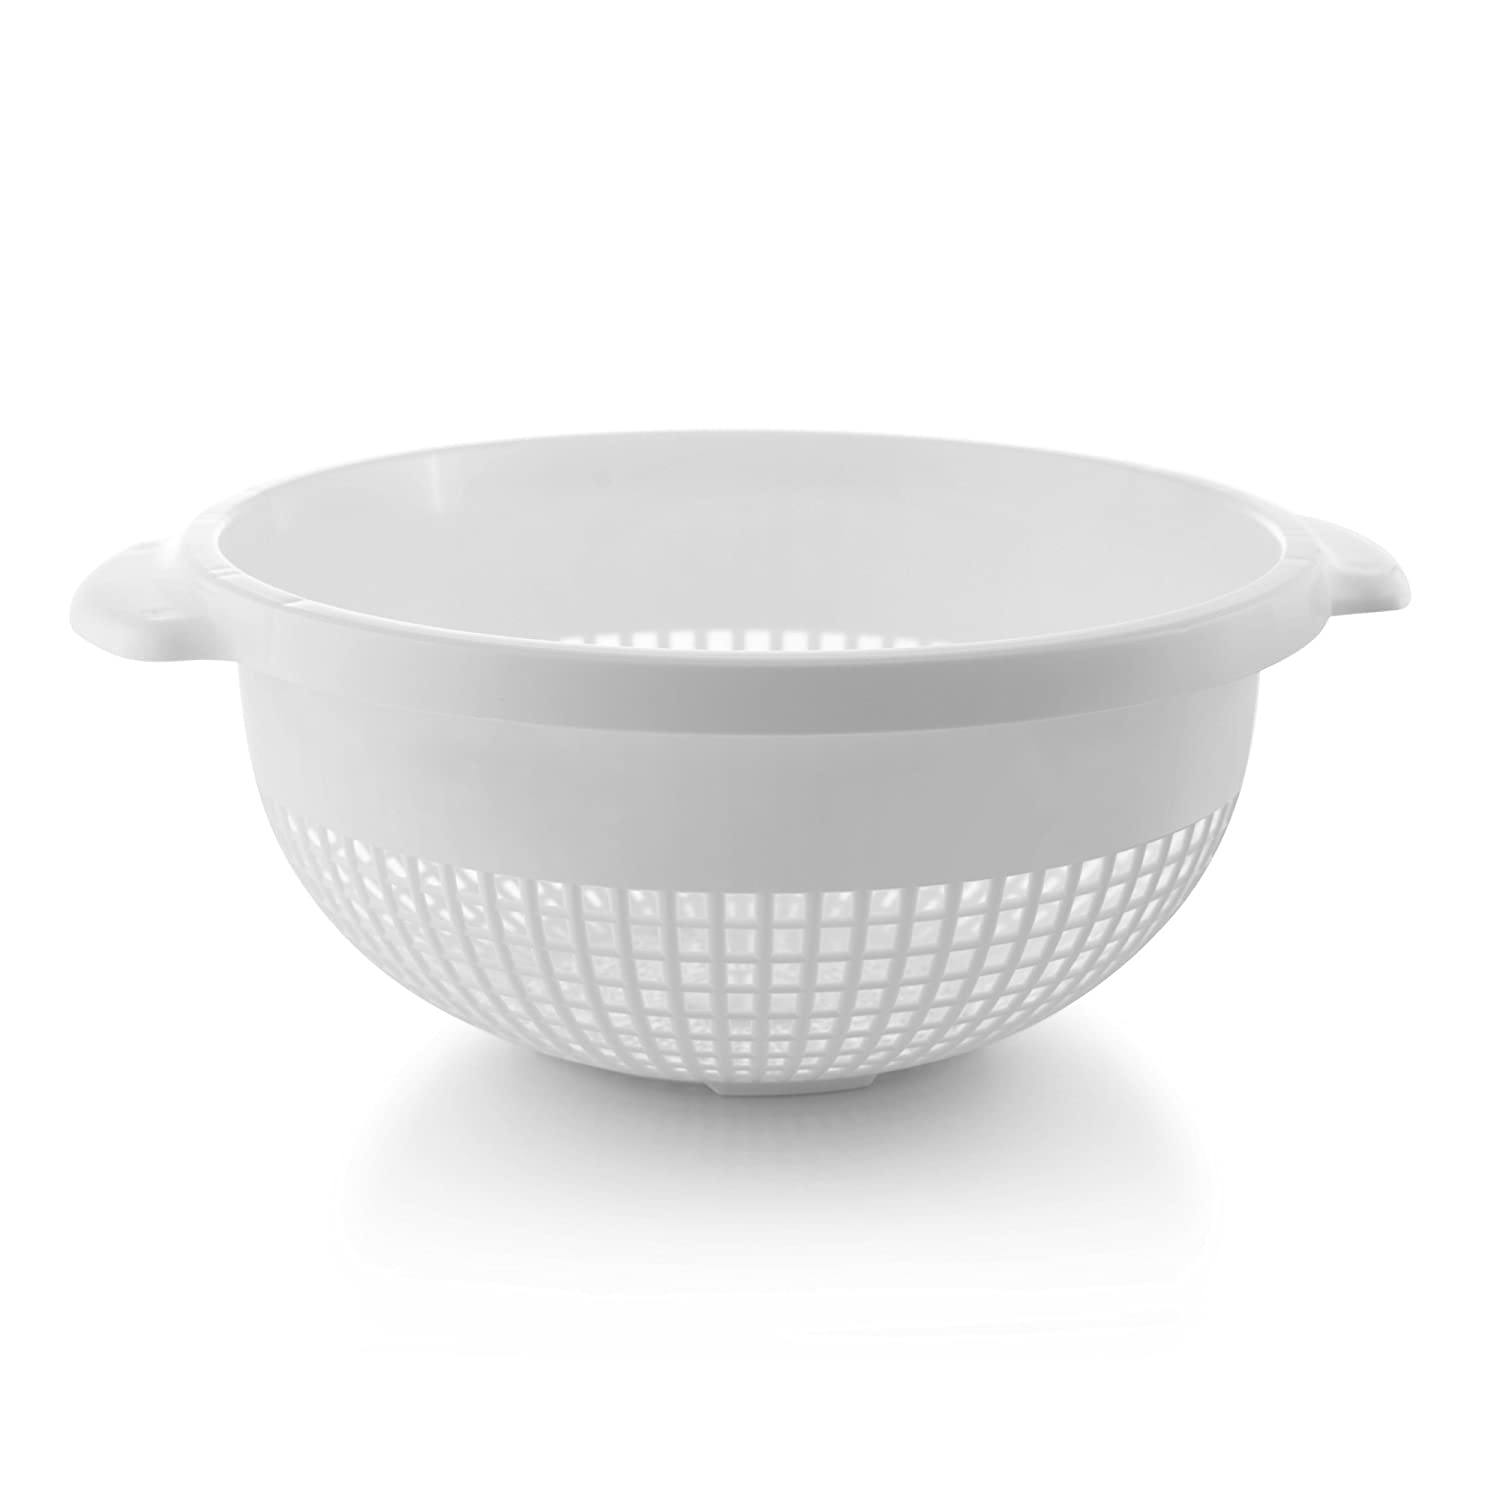 YBM Home 14 Inch Deep Plastic Strainer Colander with Handle – Made of Food Safe BPA-Free Plastic -Dishwasher Safe - Use for Pasta, Noodles, Spaghetti, Vegetables and More 31-1128-white (1, White)